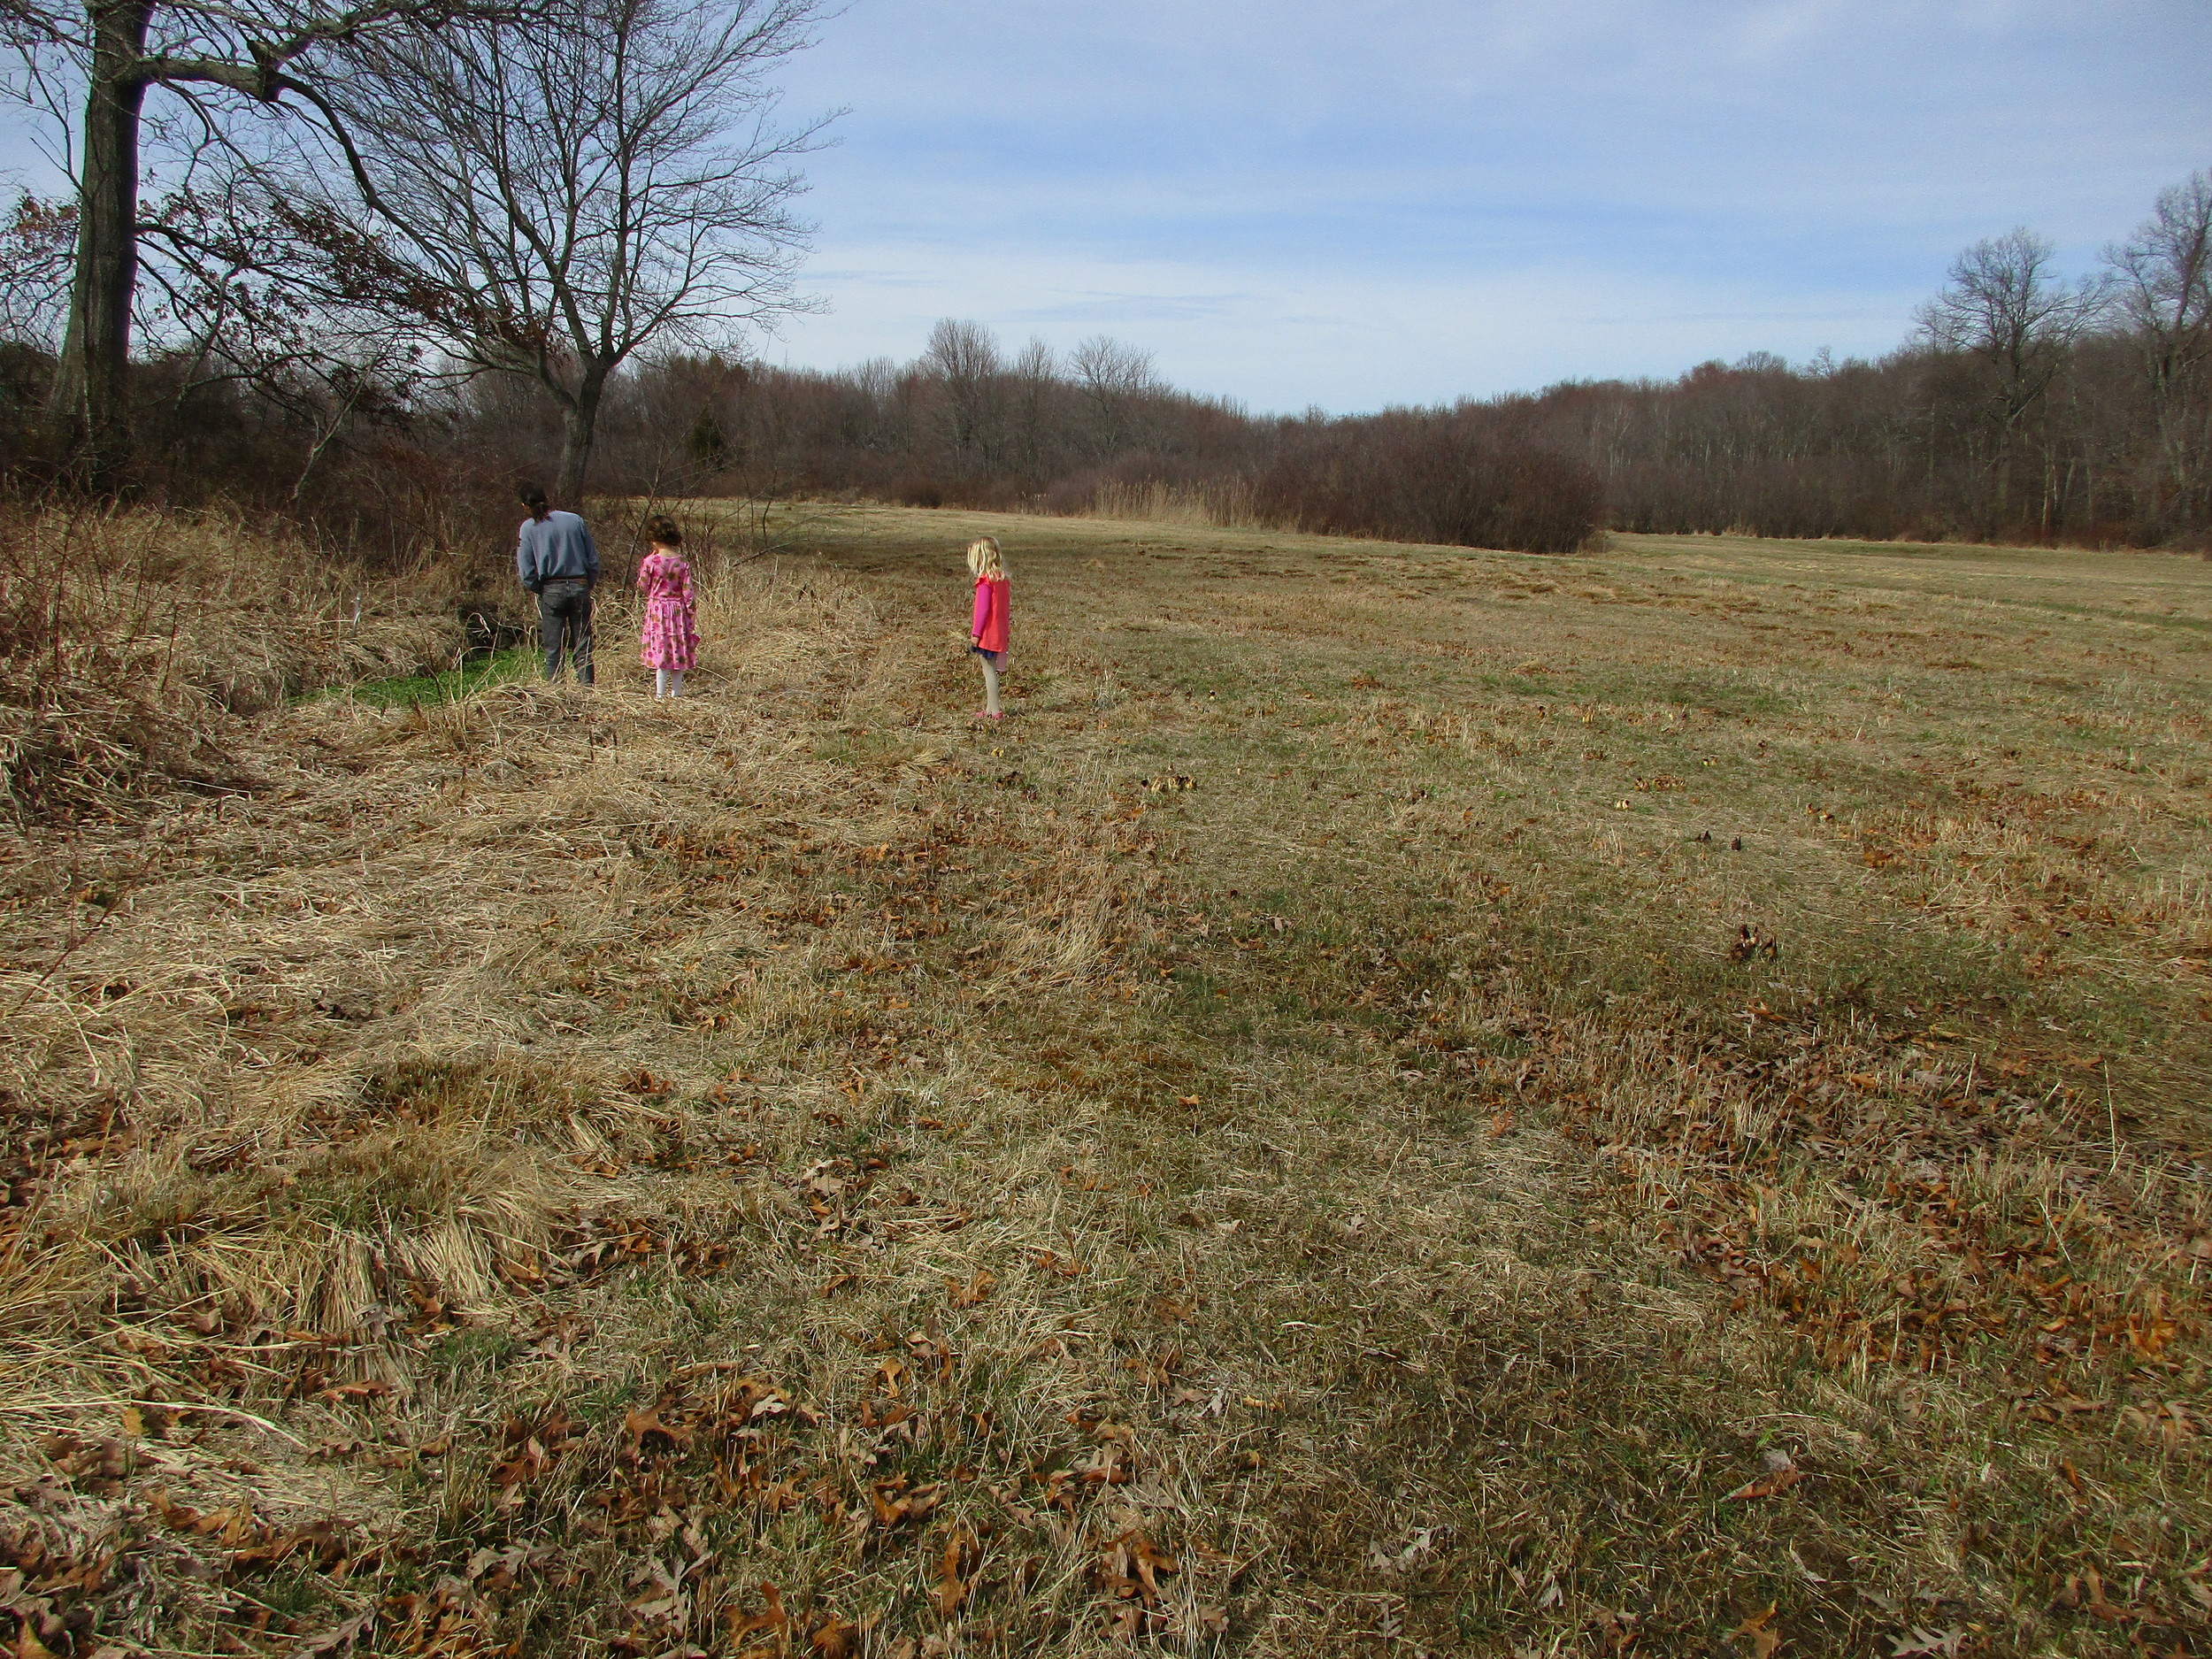 Sunday March 13th  There are quite a few skunk cabbage flowers in this field, especially along the right. Can you spot them? Somehow, the bees are able to find them with no problem! (Family checking out the spring)